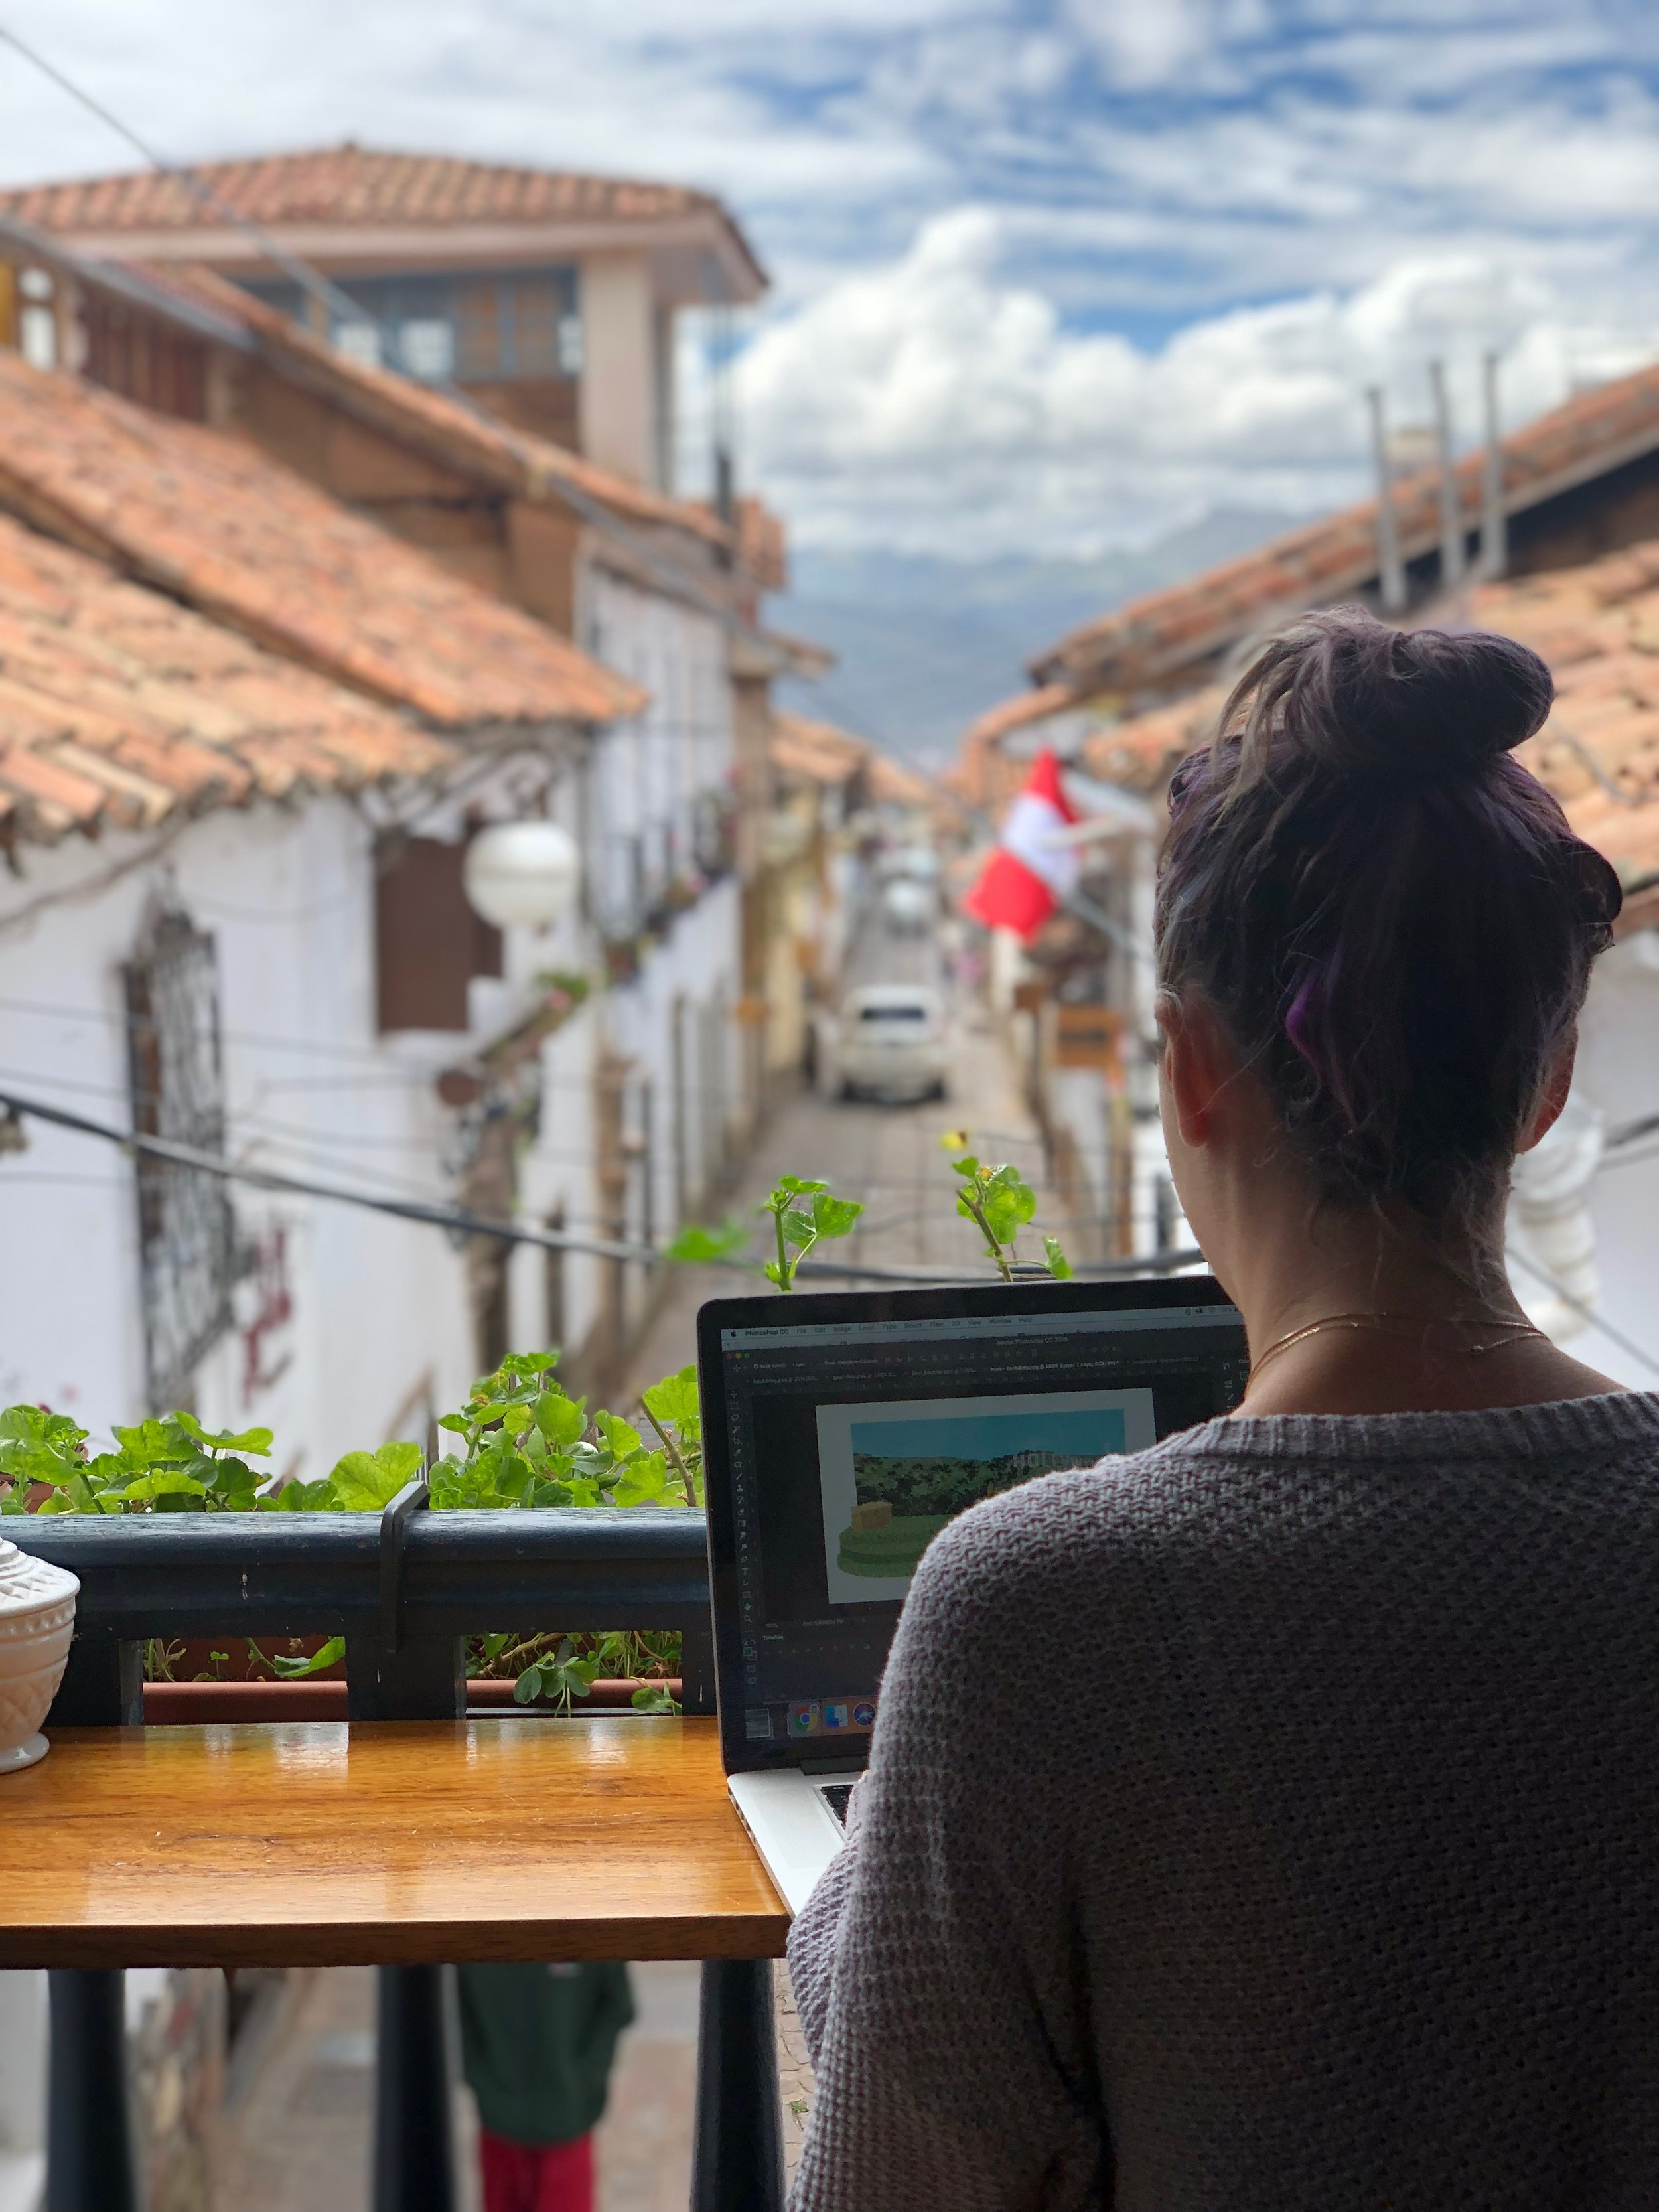 cafes-cusco-freelancing-coworking-wifi-travel tips- peru- south america